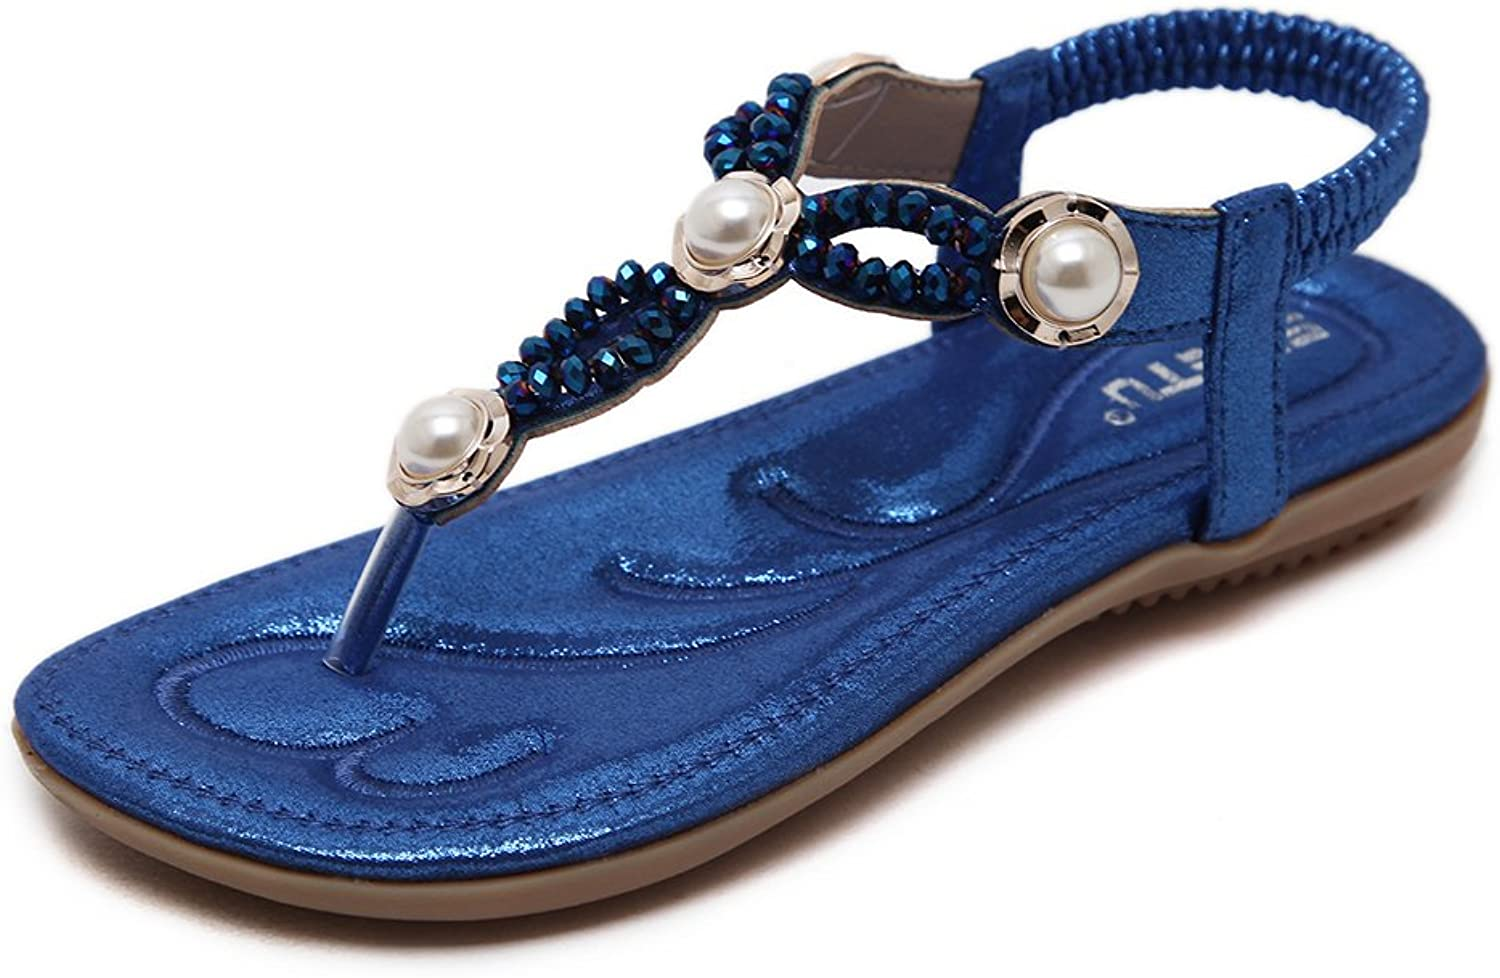 Tuoup Women's Leather Bling Beaded Sandles Summer Thong Sandals